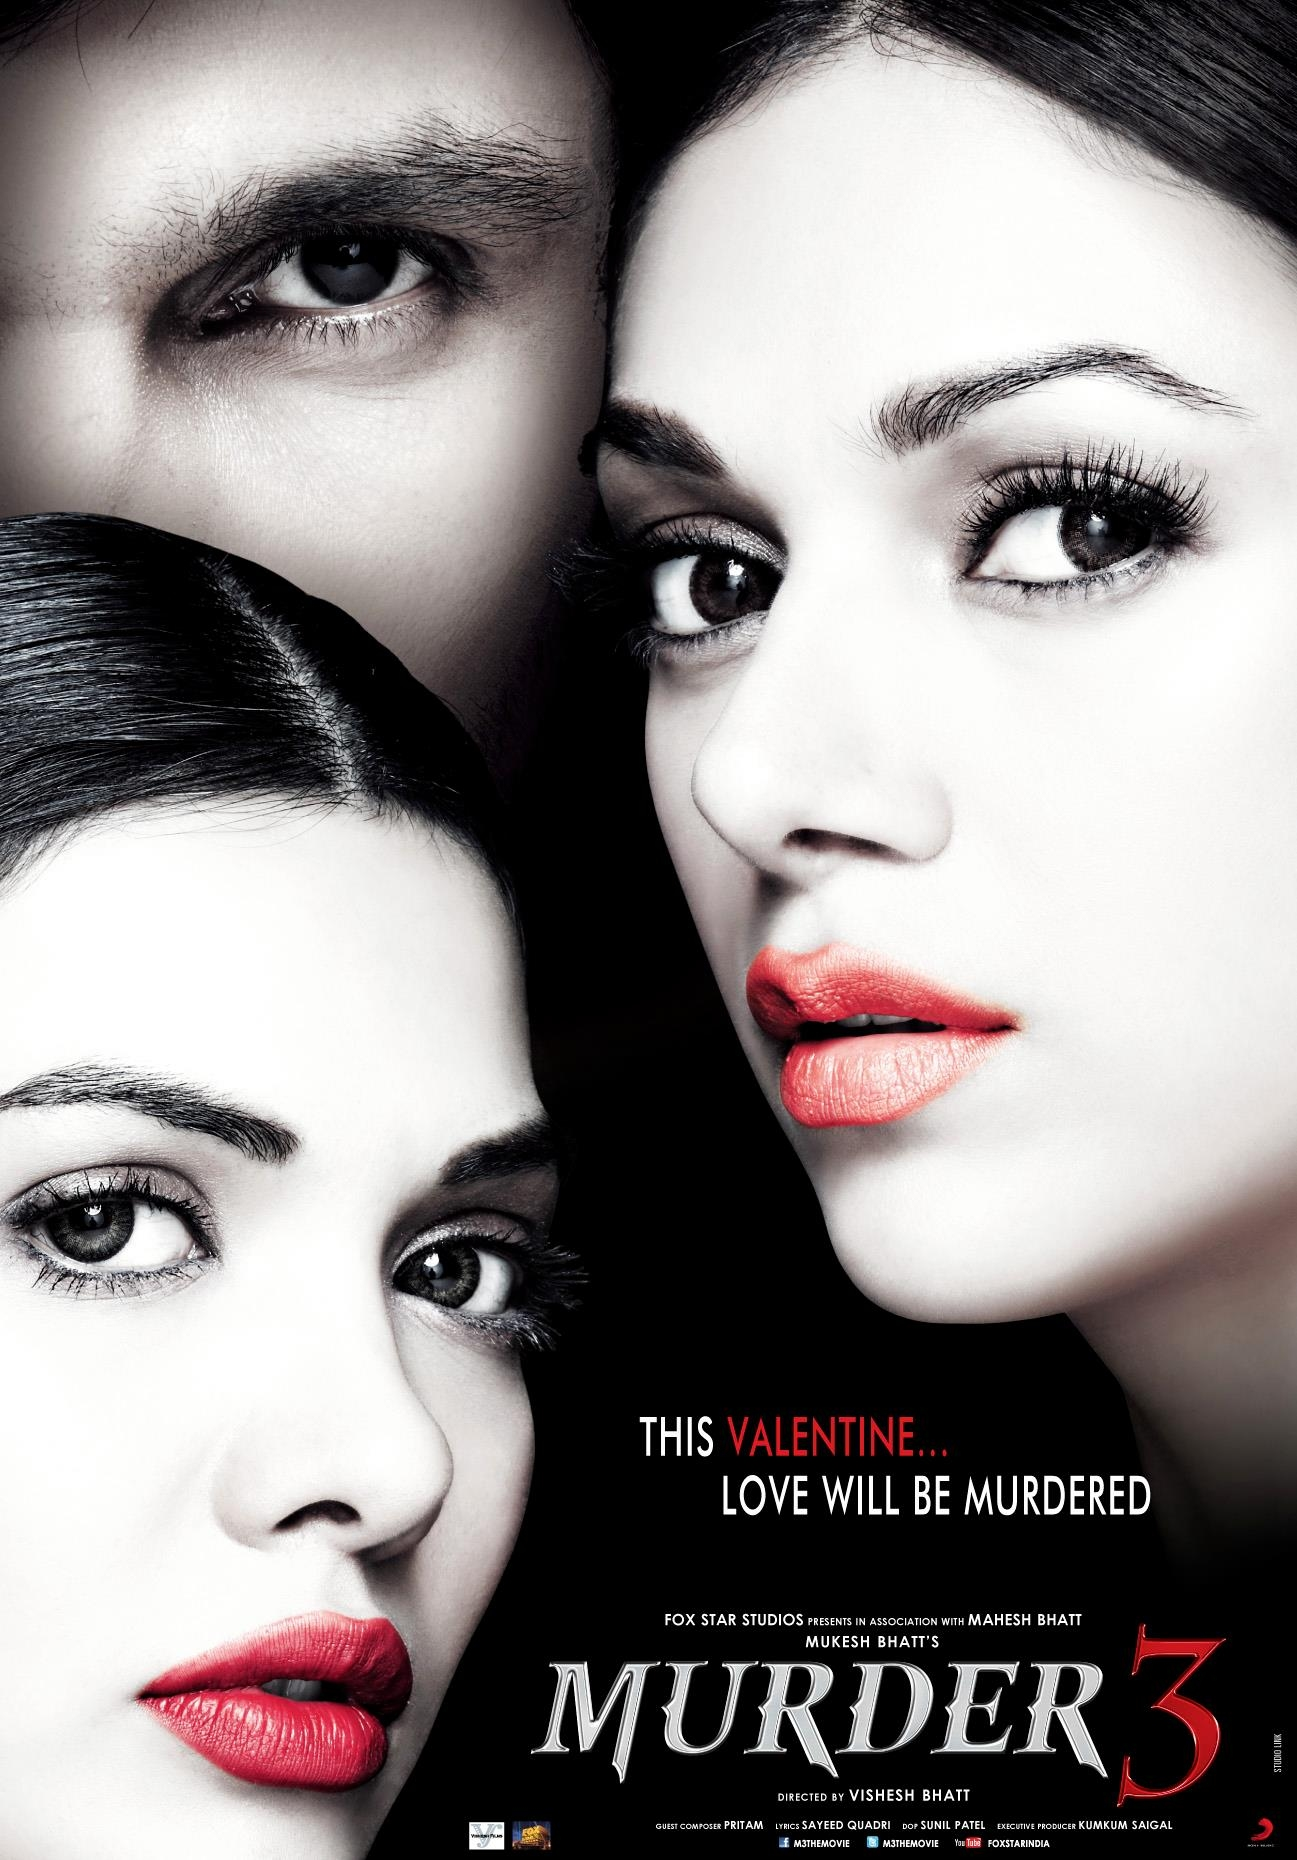 Murder 3 - Movie Poster #1 (Original)